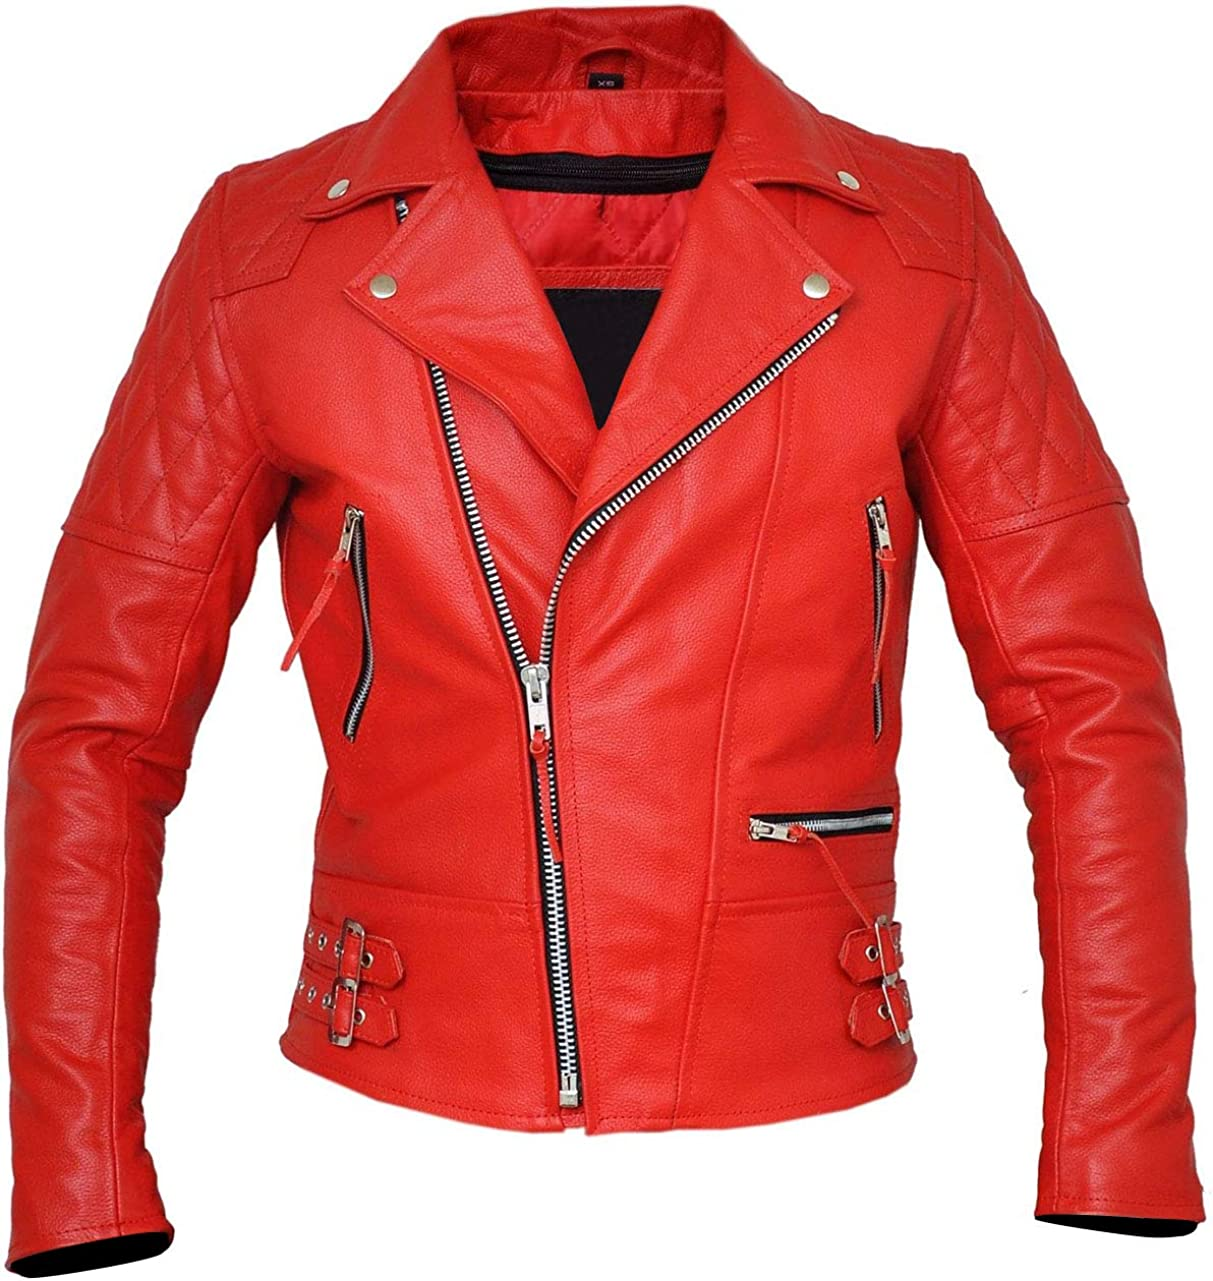 Classic Diamond Mens Red Armored Motorcycle Leather Jacket